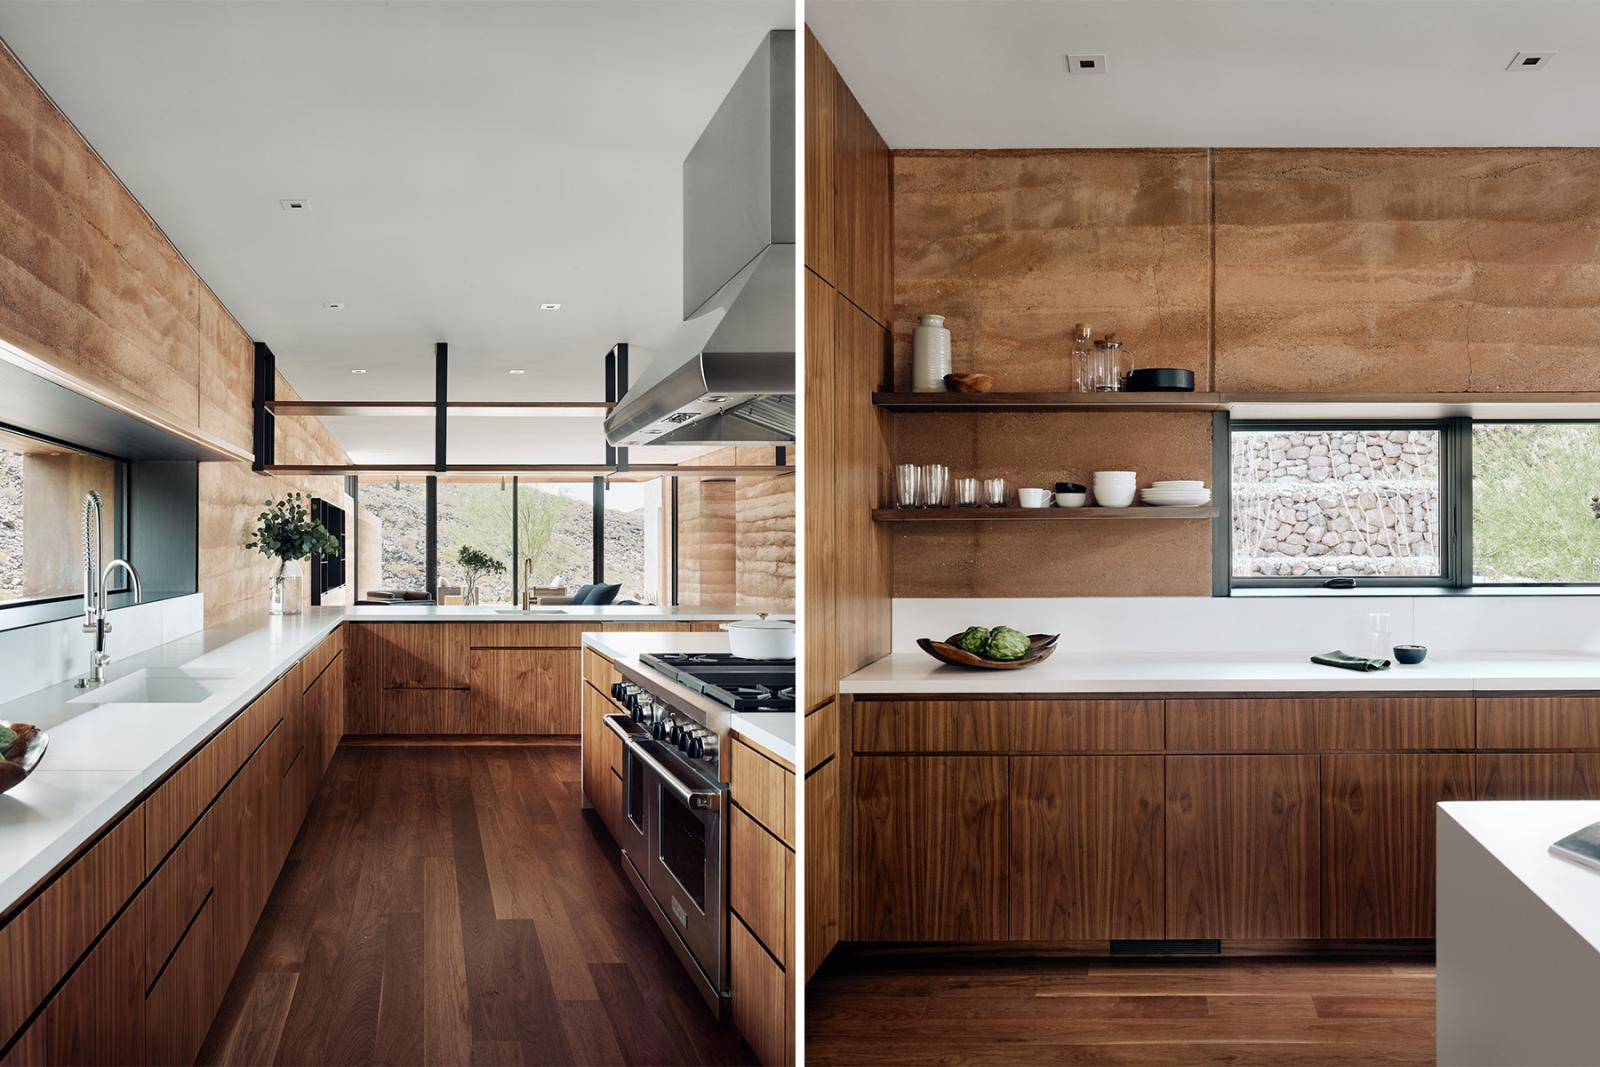 Interior kitchen views, boast of rammed earth walls, wood clad cabinetry and large windows with views to desert.